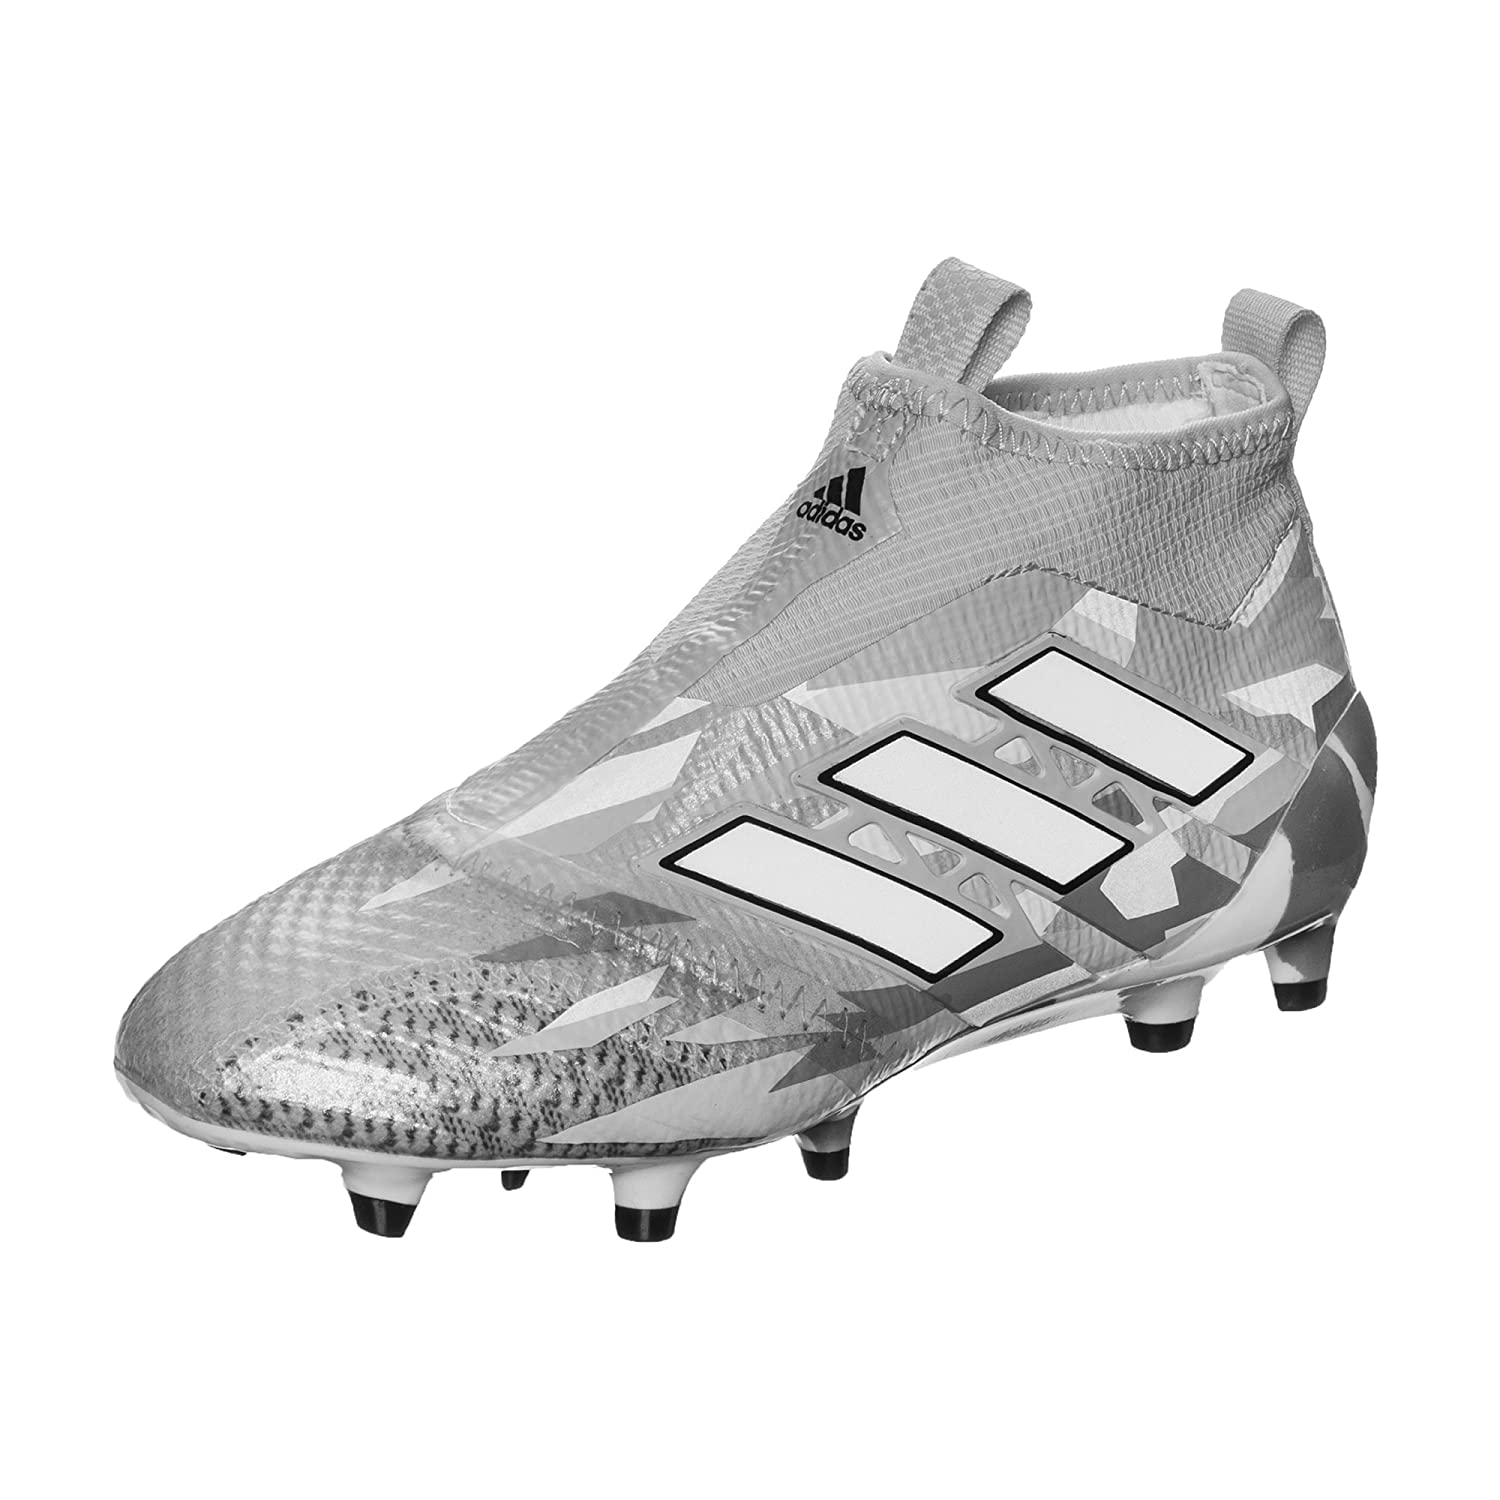 new styles ee081 0d544 Ace 17+ Pure Control Kids FG Football Boots - Clear Grey White Core Black -  Size 5.5  Amazon.co.uk  Shoes   Bags